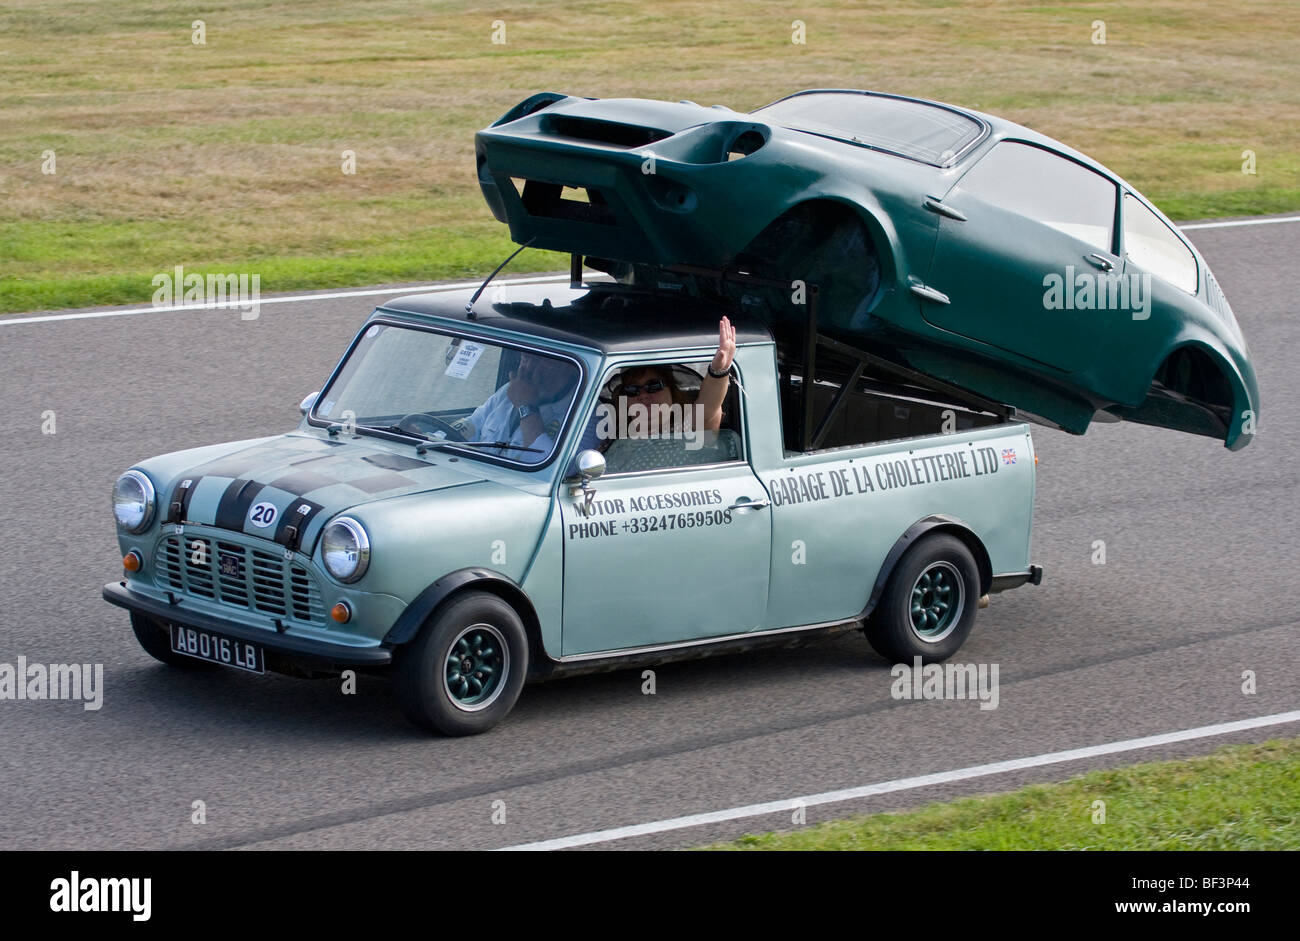 Mini Marcos Immagini & Mini Marcos Fotos Stock - Alamy